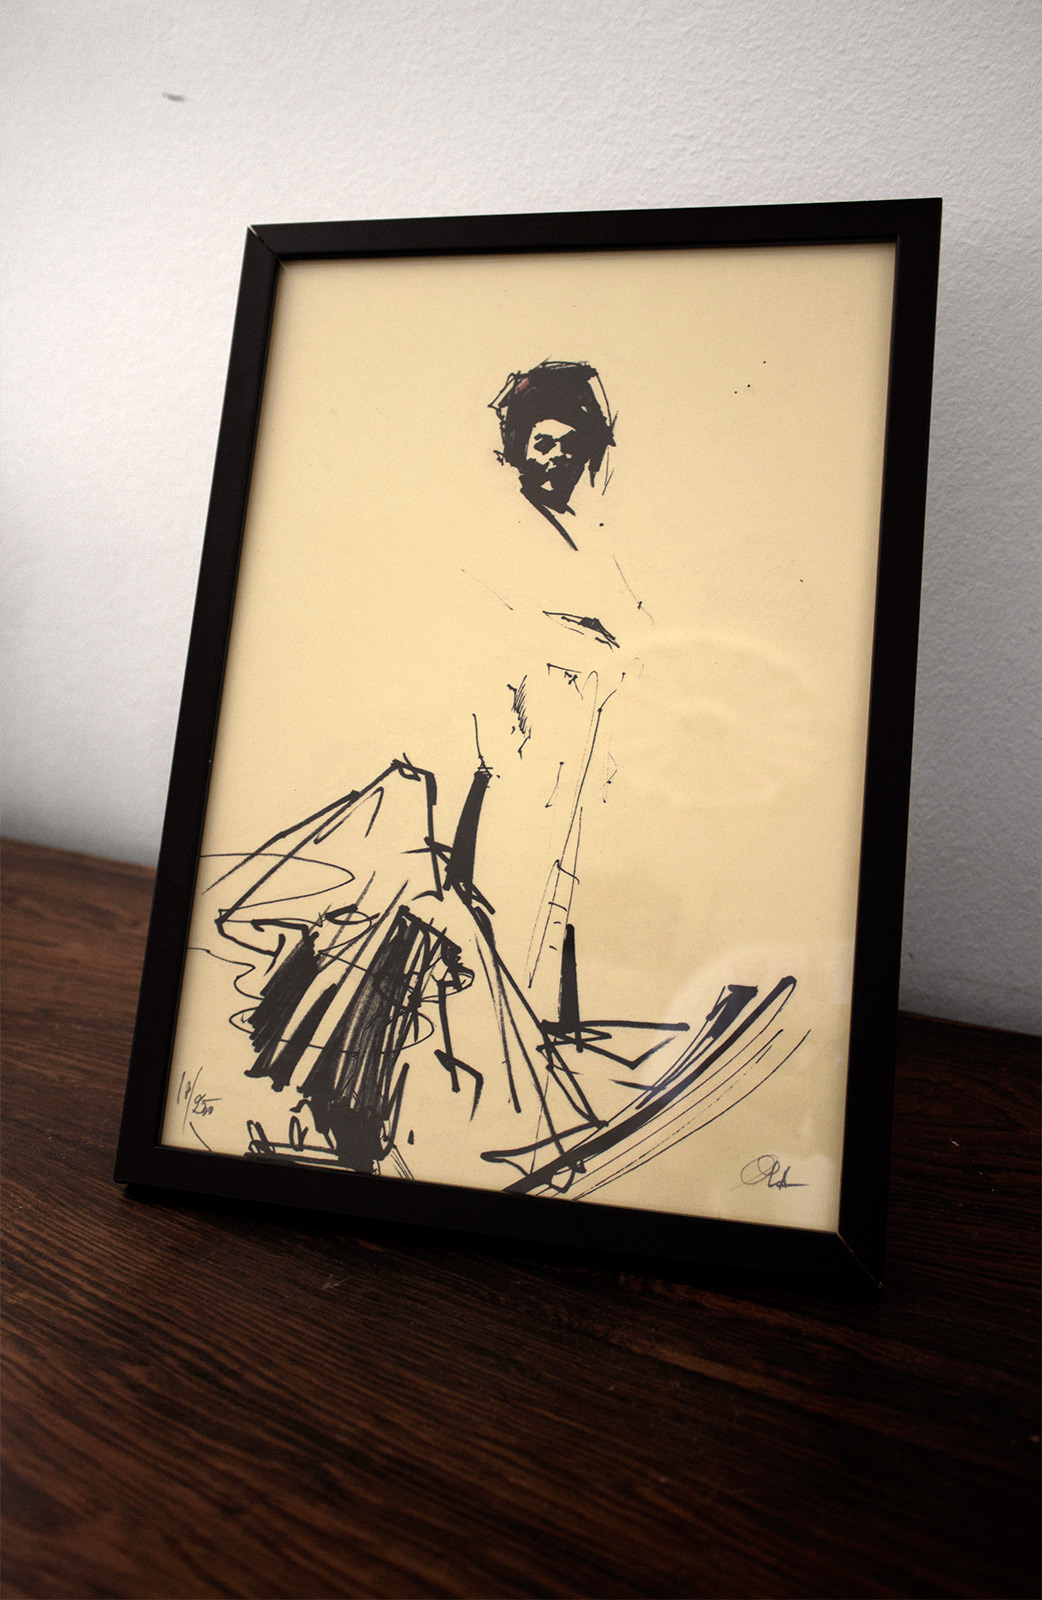 posters-prints, giclee-print, aesthetic, figurative, graphical, portraiture, bodies, movement, people, beige, black, red, ink, paper, abstract-forms, beautiful, contemporary-art, danish, decorative, design, female, interior, interior-design, modern, modern-art, nordic, posters, scandinavien, women, Buy original high quality art. Paintings, drawings, limited edition prints & posters by talented artists.